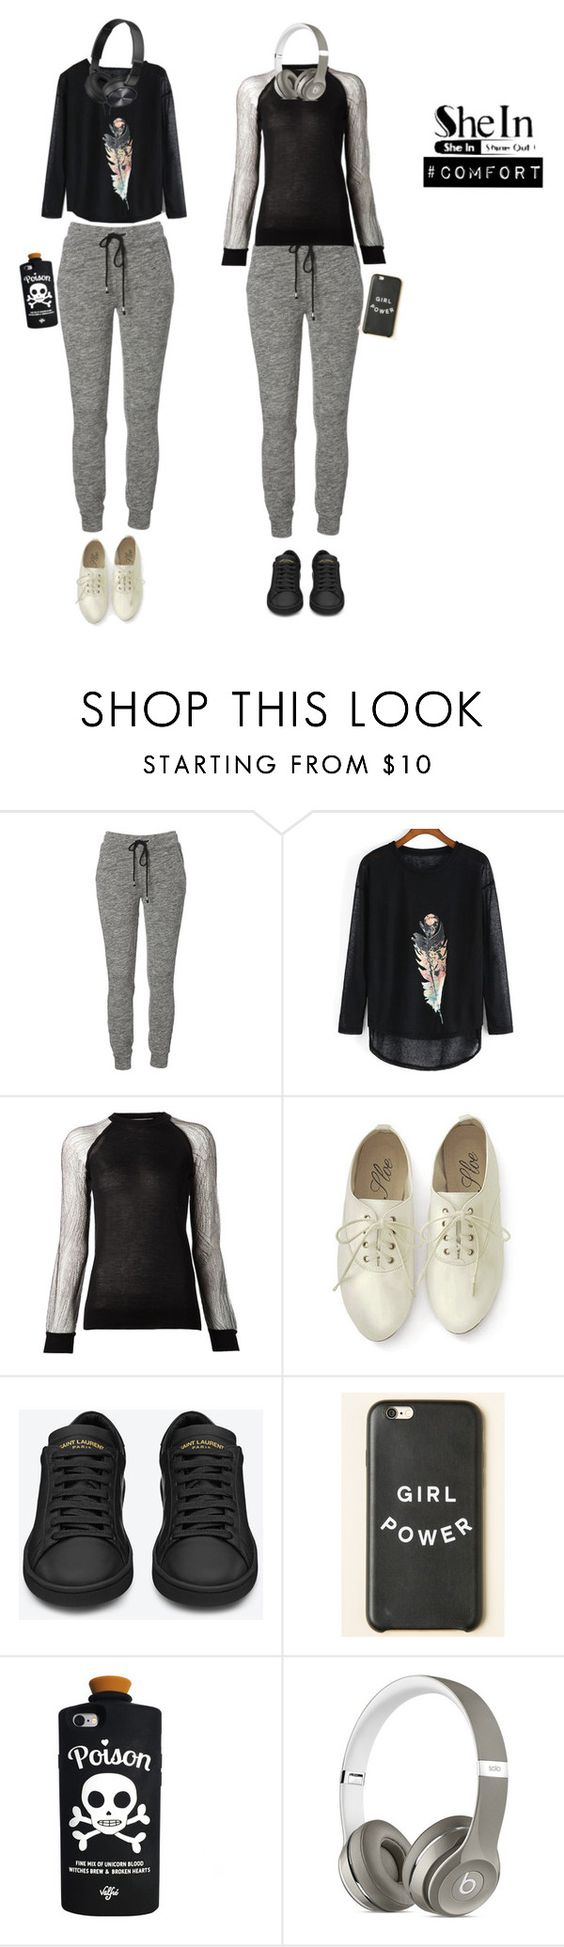 """Shein contest"" by ilovedemi4ever ❤ liked on Polyvore featuring Jason Wu, Yves Saint Laurent, Valfré, Beats by Dr. Dre and Sony"